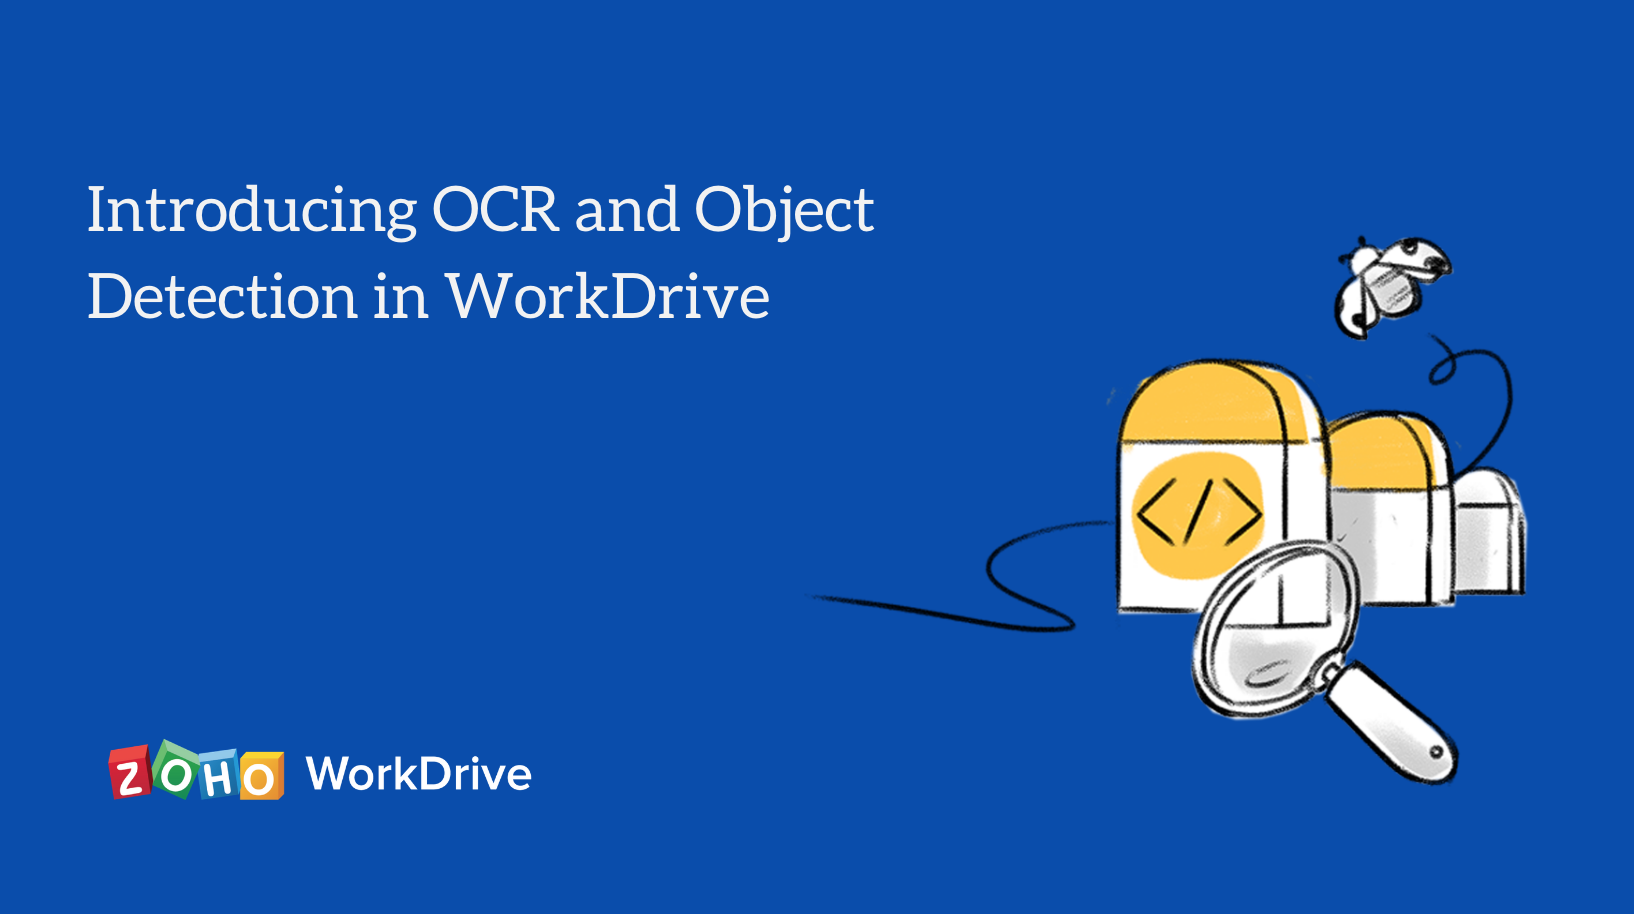 Introducing Optical Character Recognition and Object Detection in WorkDrive